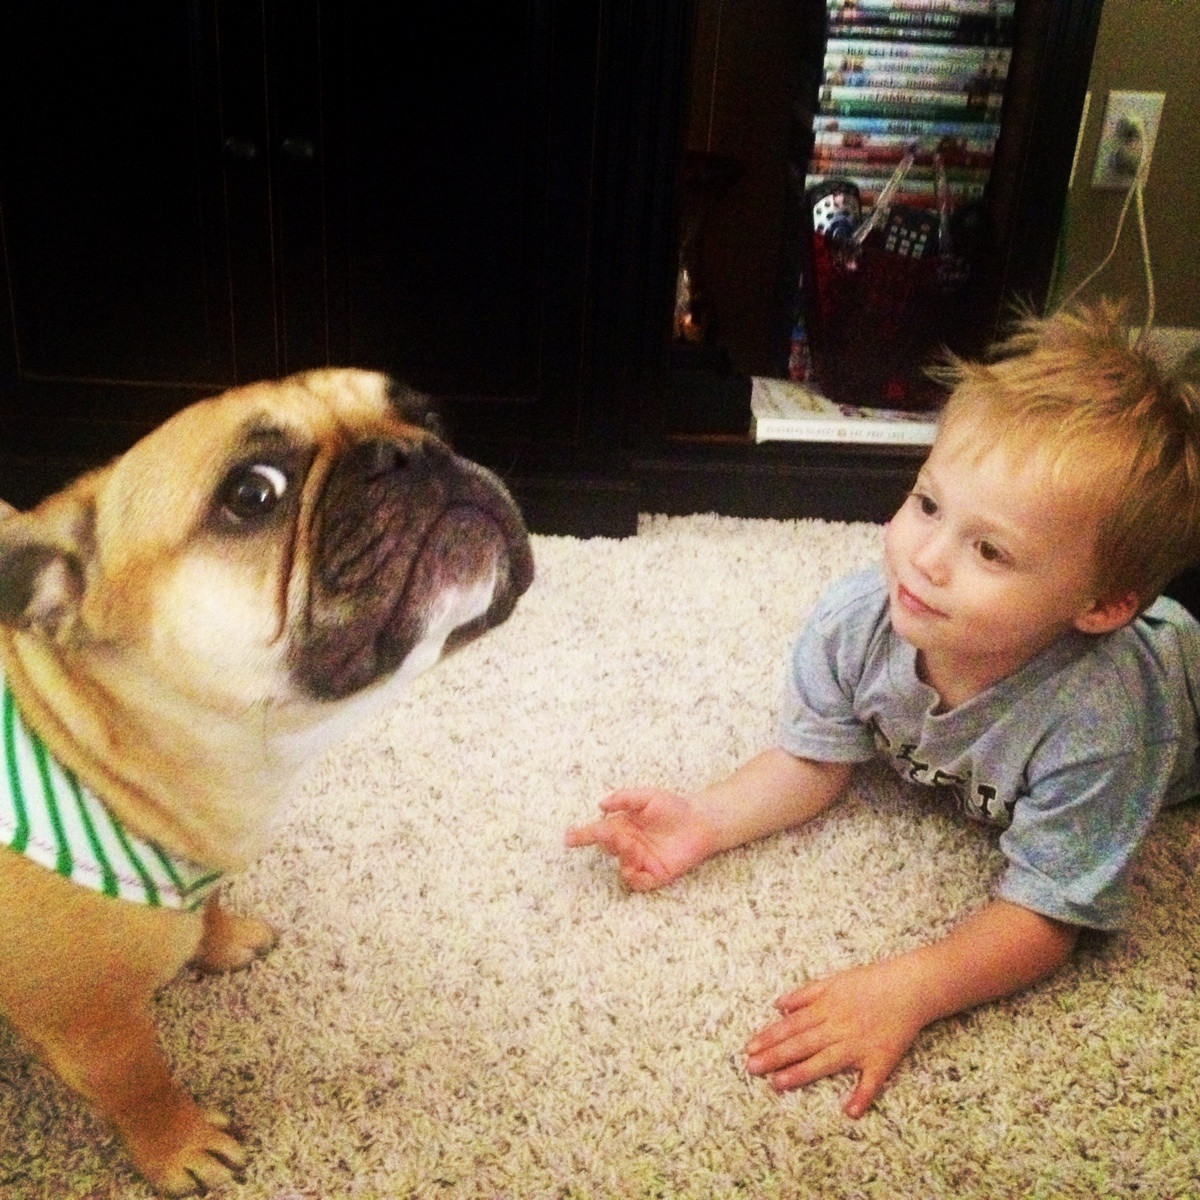 He loves Lucy. Lucy is not so sure. Photo/caption via Imgur